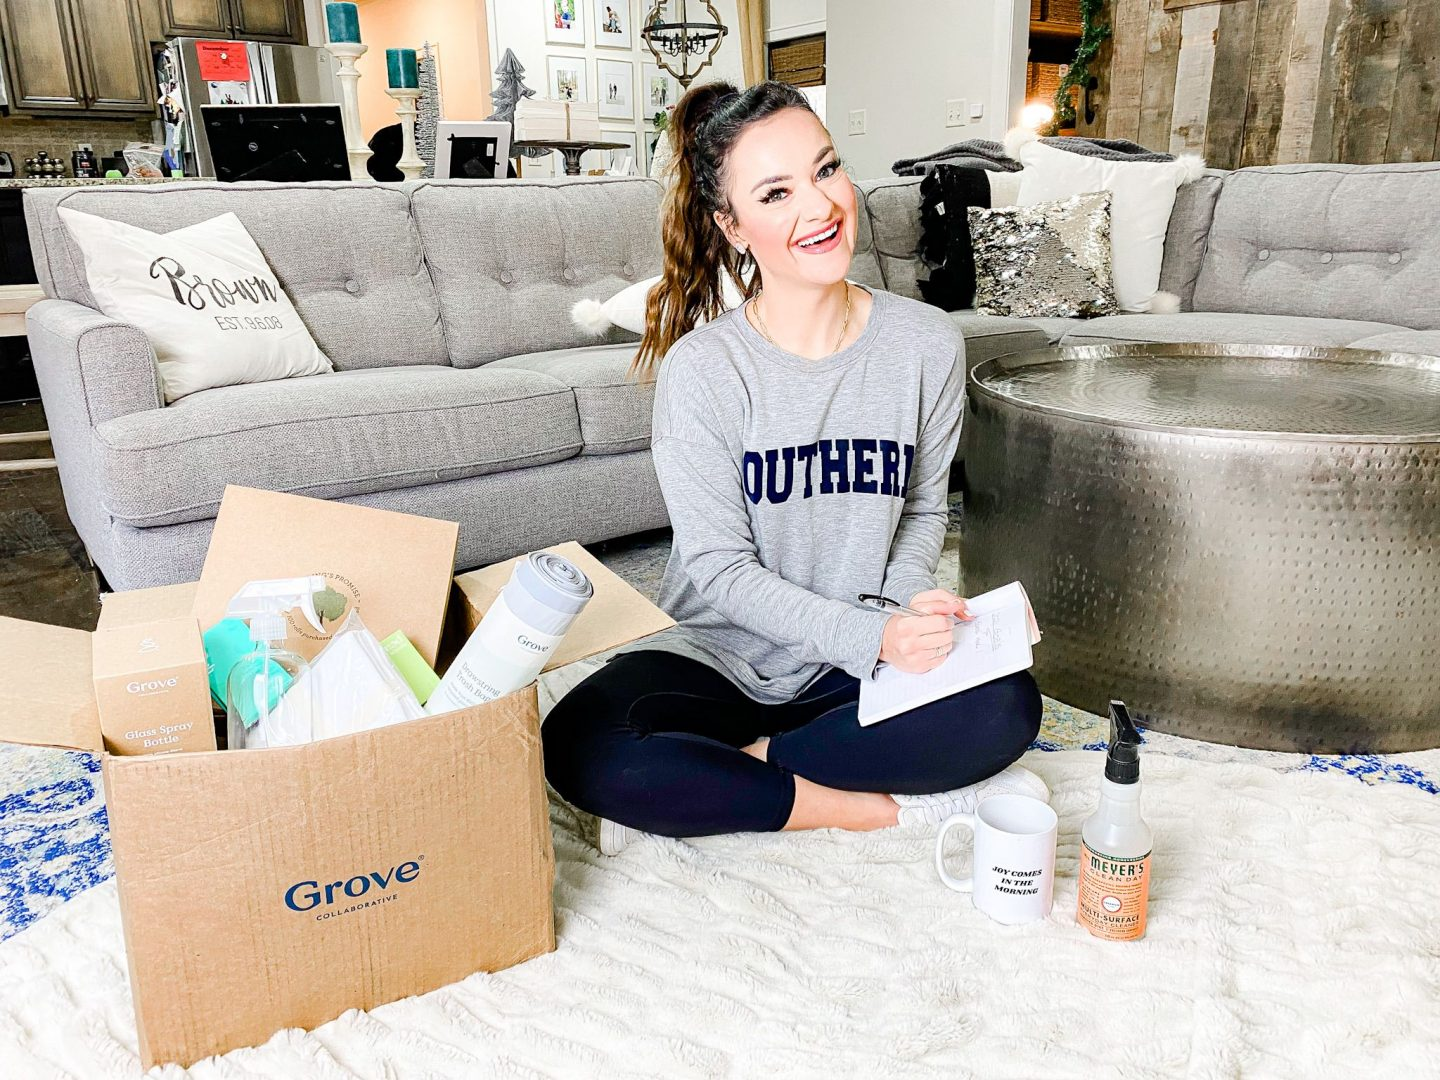 How To Keep Your Home Clean And Organized In 2021, by Alabama Health + Lifestyle blogger, Heather Brown // My Life Well Loved